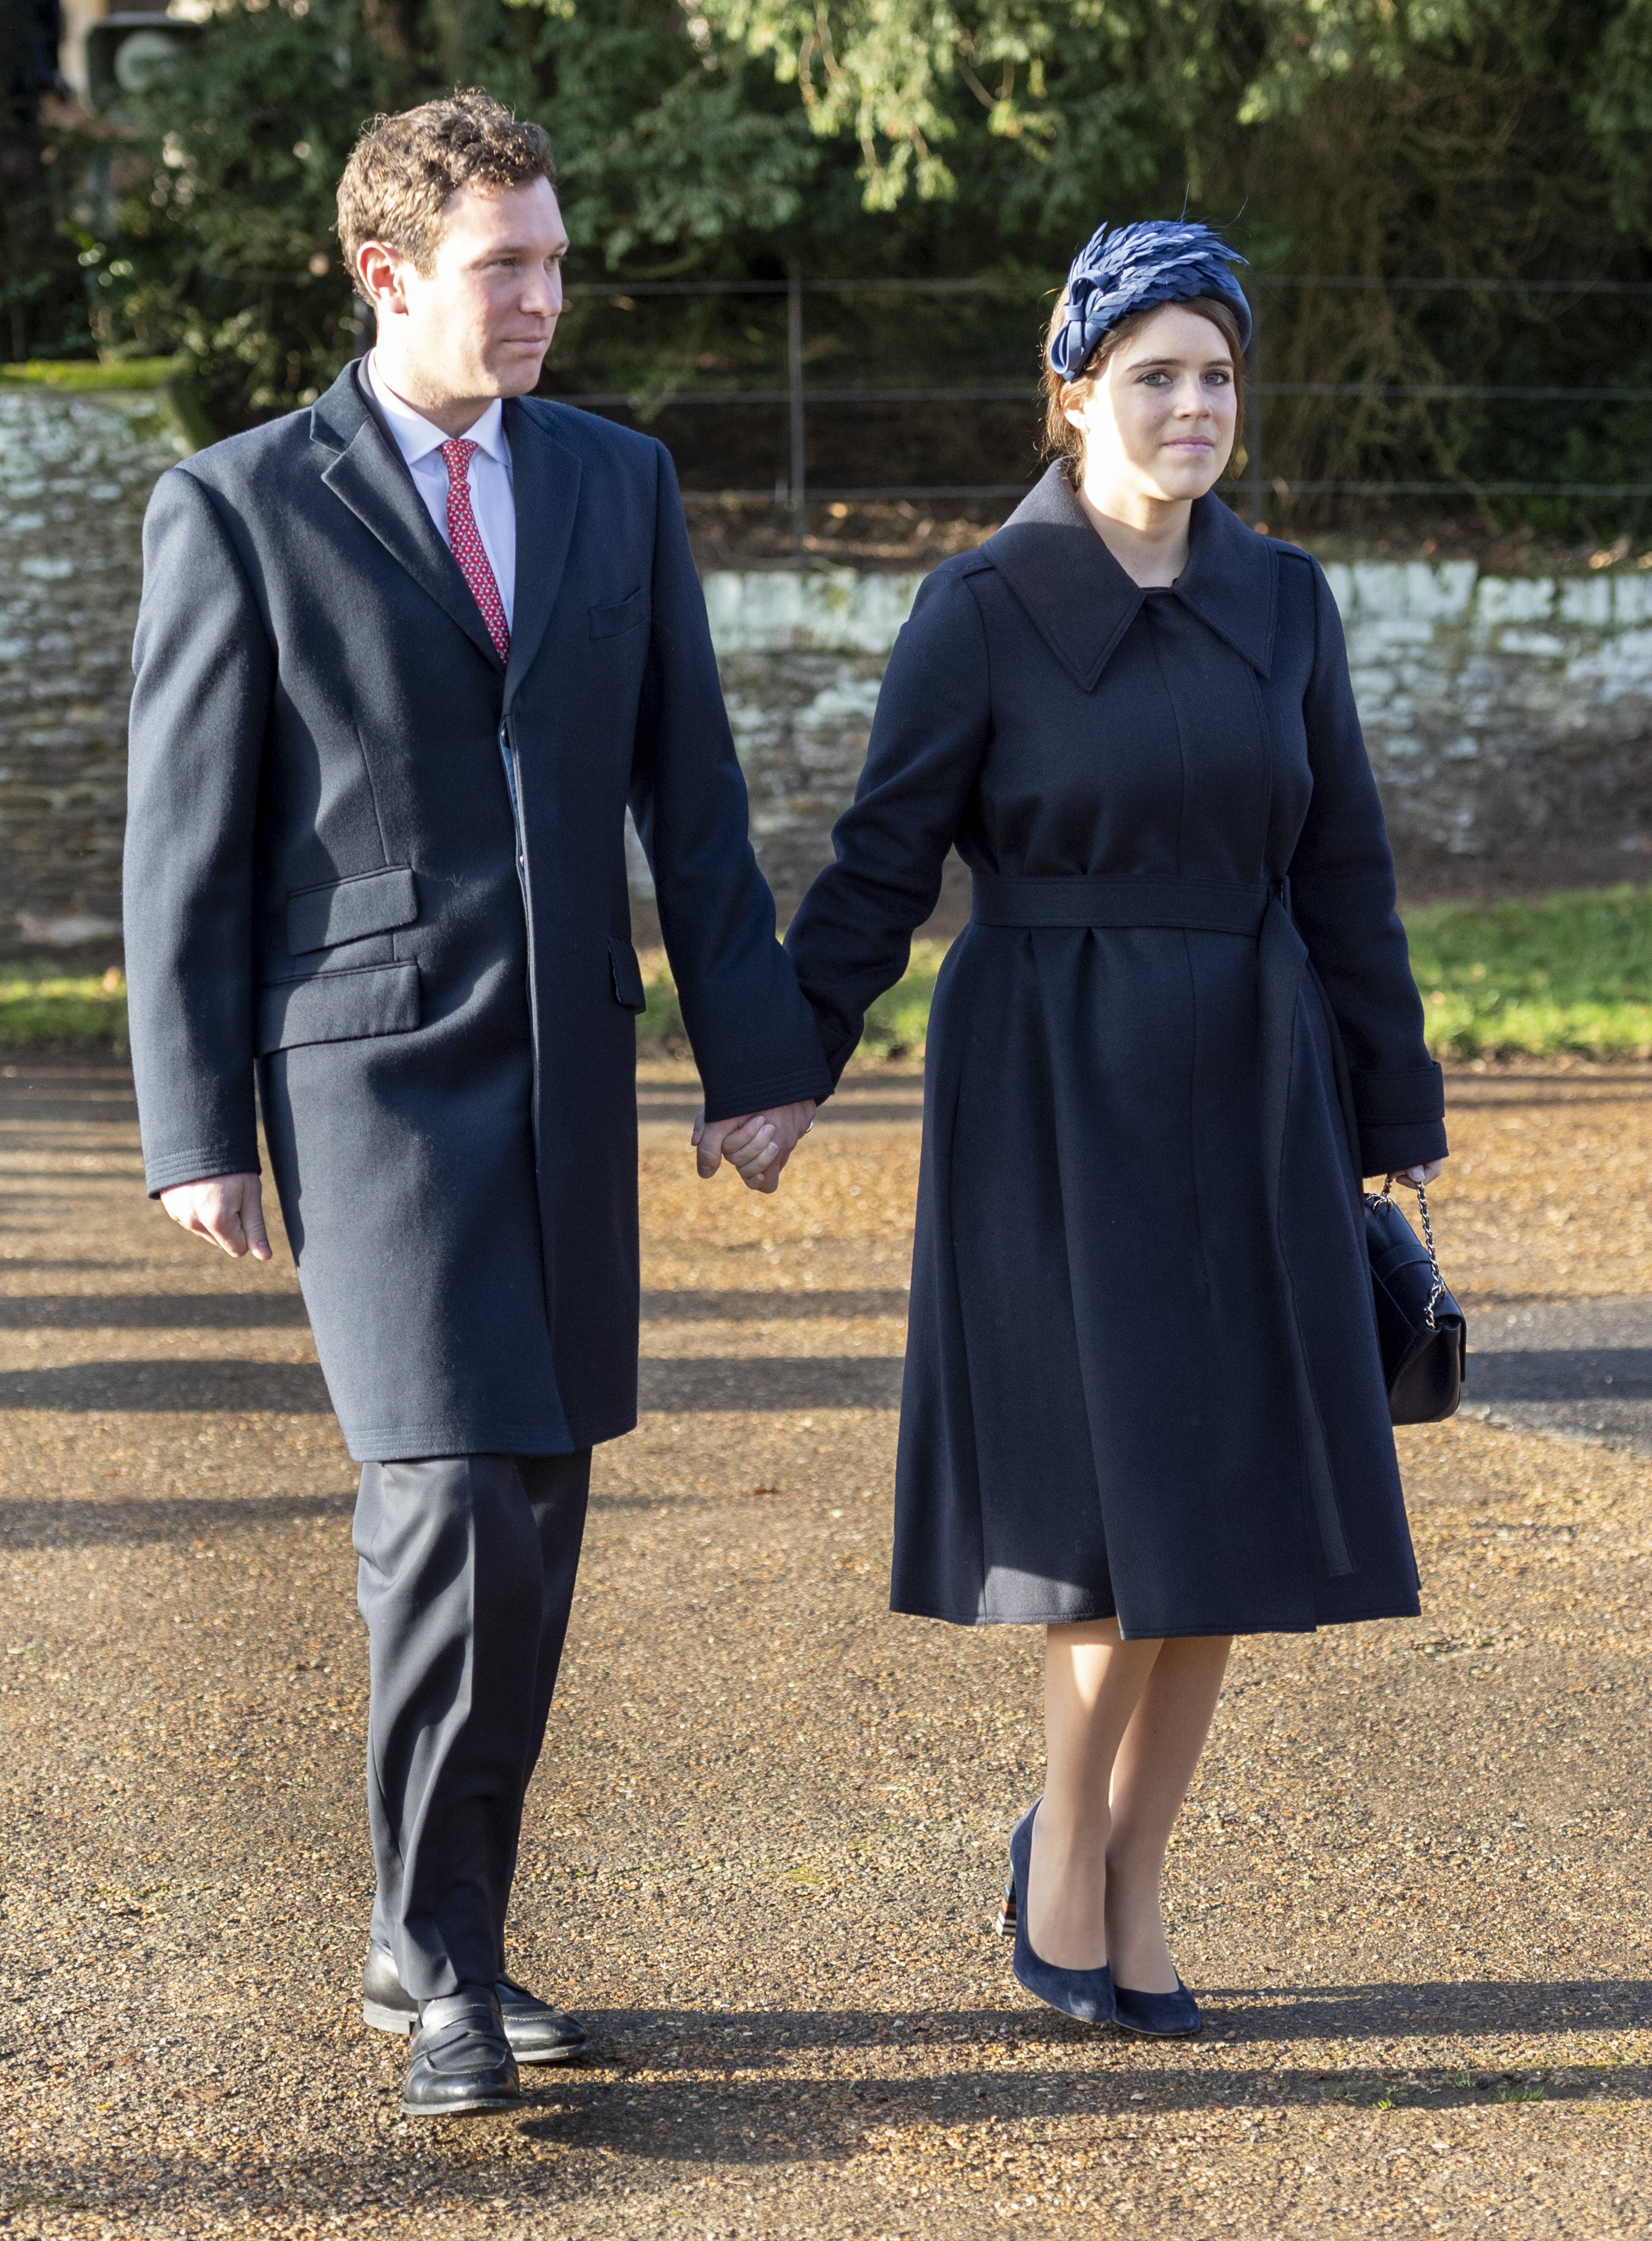 Princess Eugenie and her husband, Jack Brooksbank attending Christmas Day service in Sandringham, December, 2019. | Photo: Getty Images.